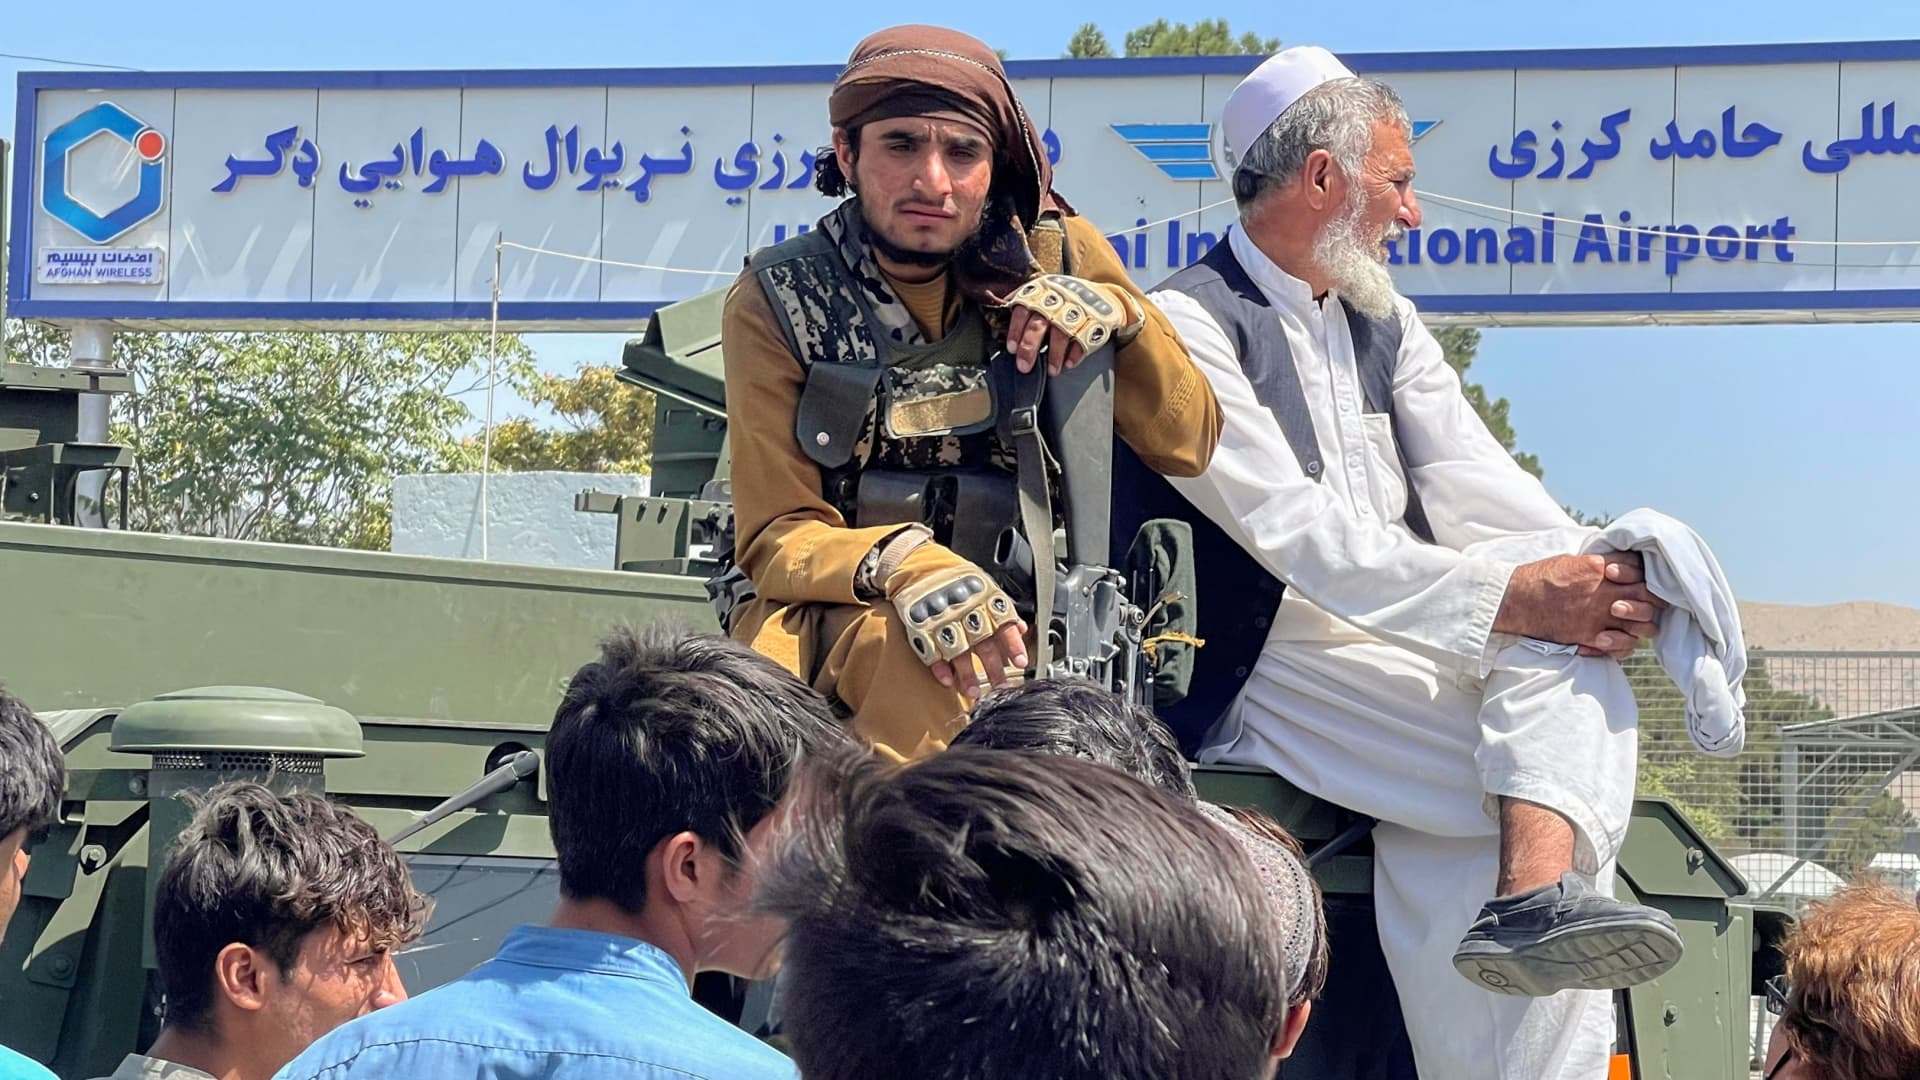 A member of Taliban forces (L) sits on a an armoured vehicle outside Hamid Karzai International Airport in Kabul, Afghanistan August 16, 2021.